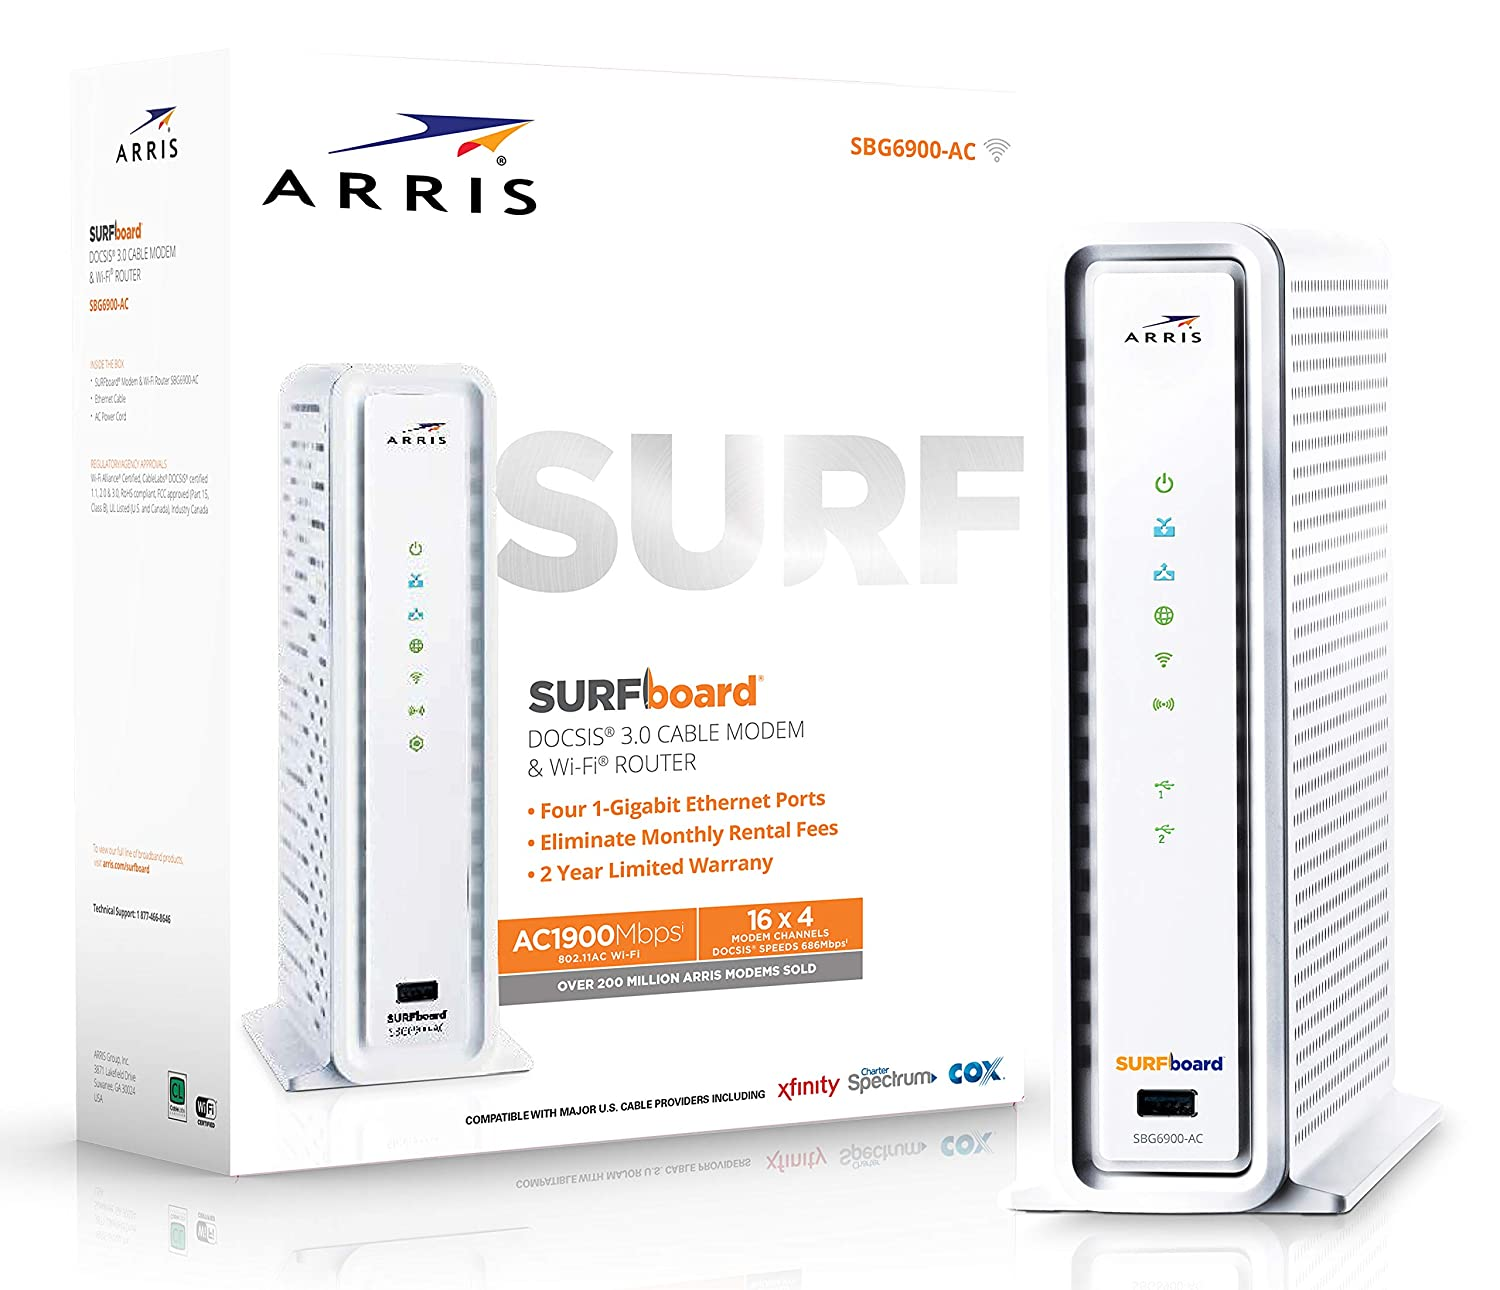 ARRIS SURFboard SBG6900AC Docsis 3 0 16x4 Cable Modem/ Wi-Fi AC1900 Router  - Retail Packaging - White